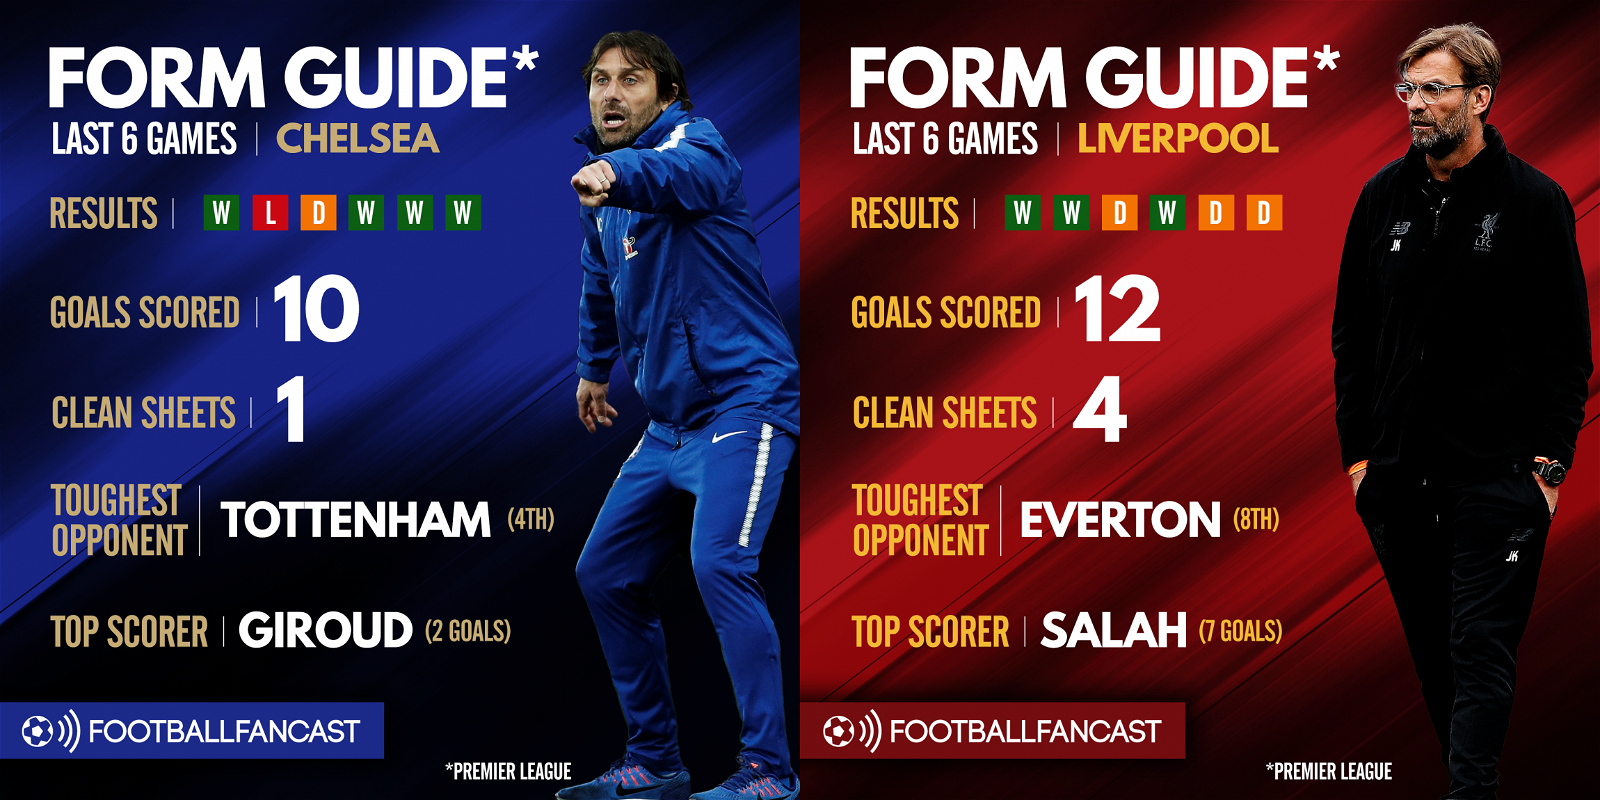 Chelsea vs Liverpool - Form Guide